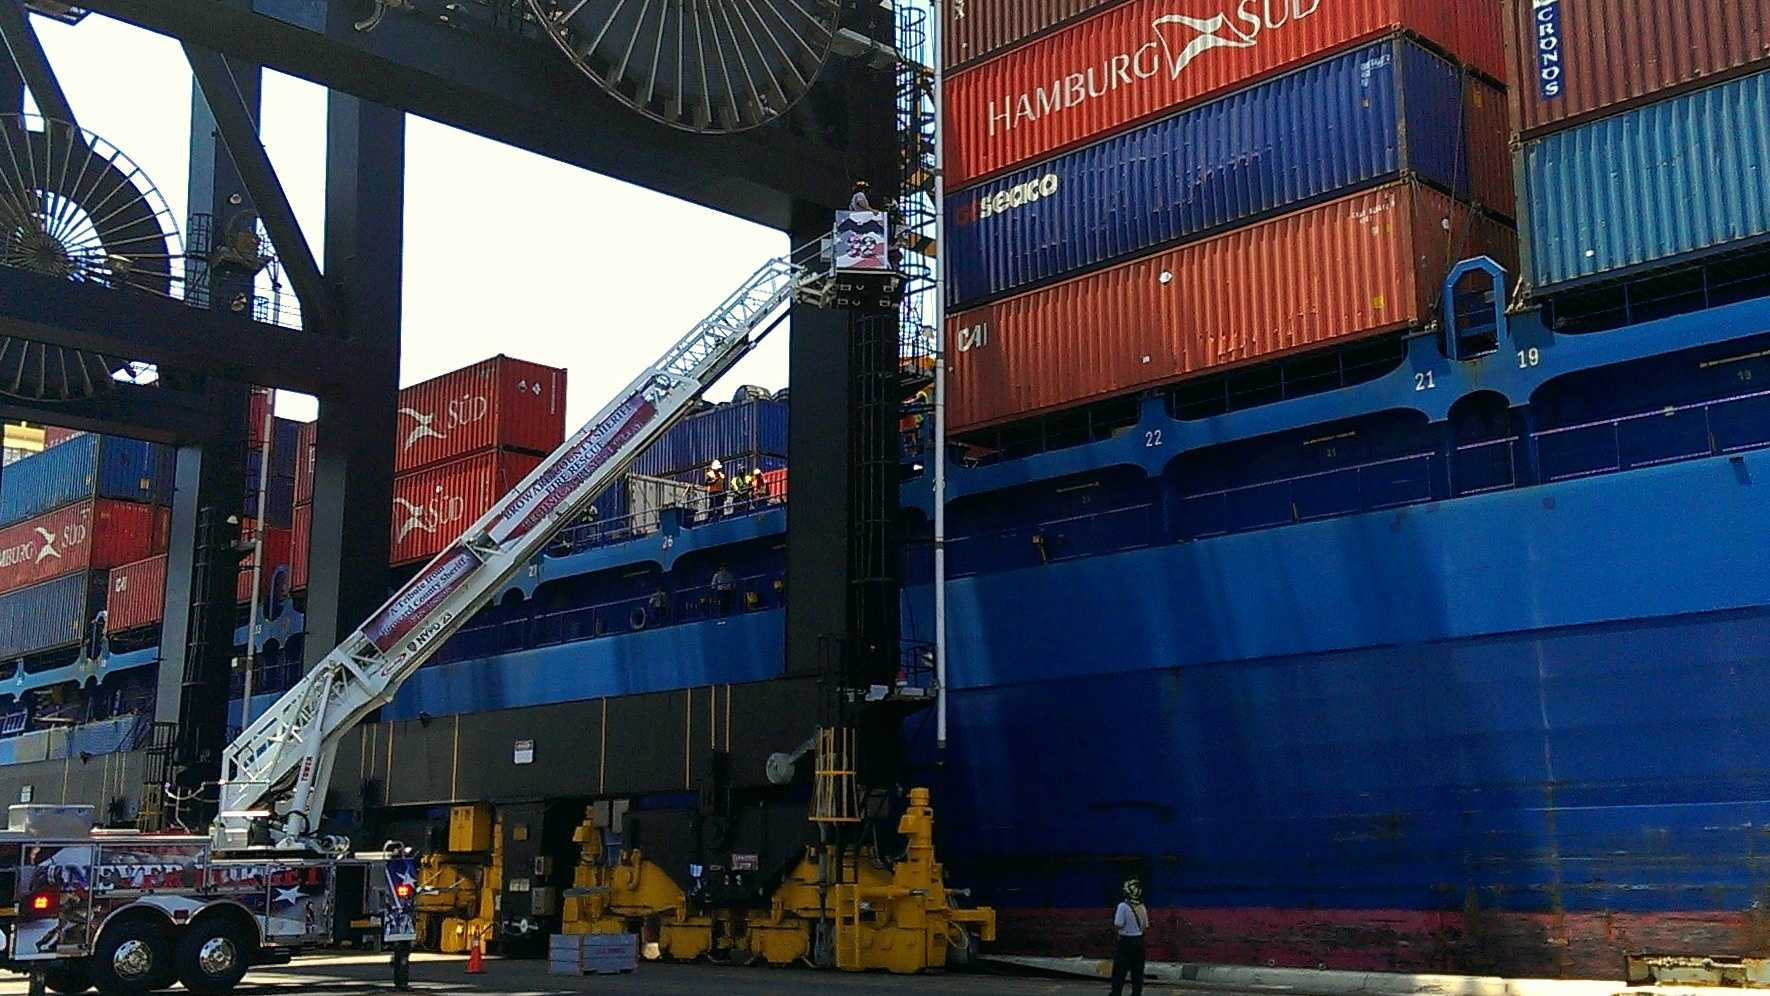 A man was injured by a cargo container at Port Everglades on Sunday.